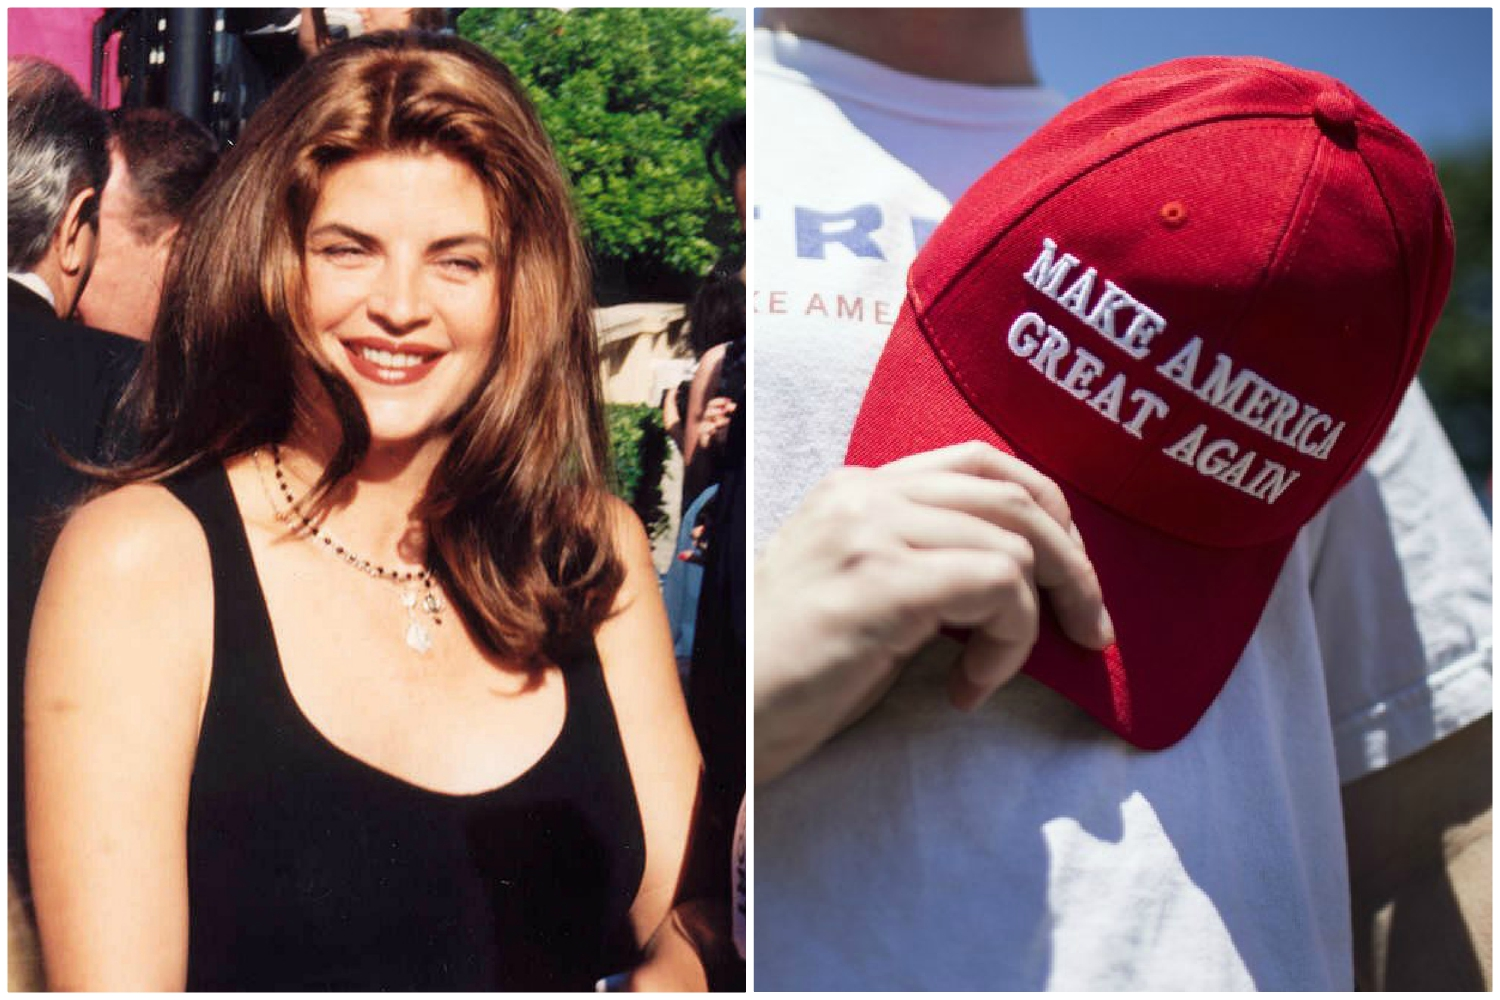 kirstie-alley-responds-to-the-backlash-she-received-after-explaining-why-shes-voting-for-trump-again